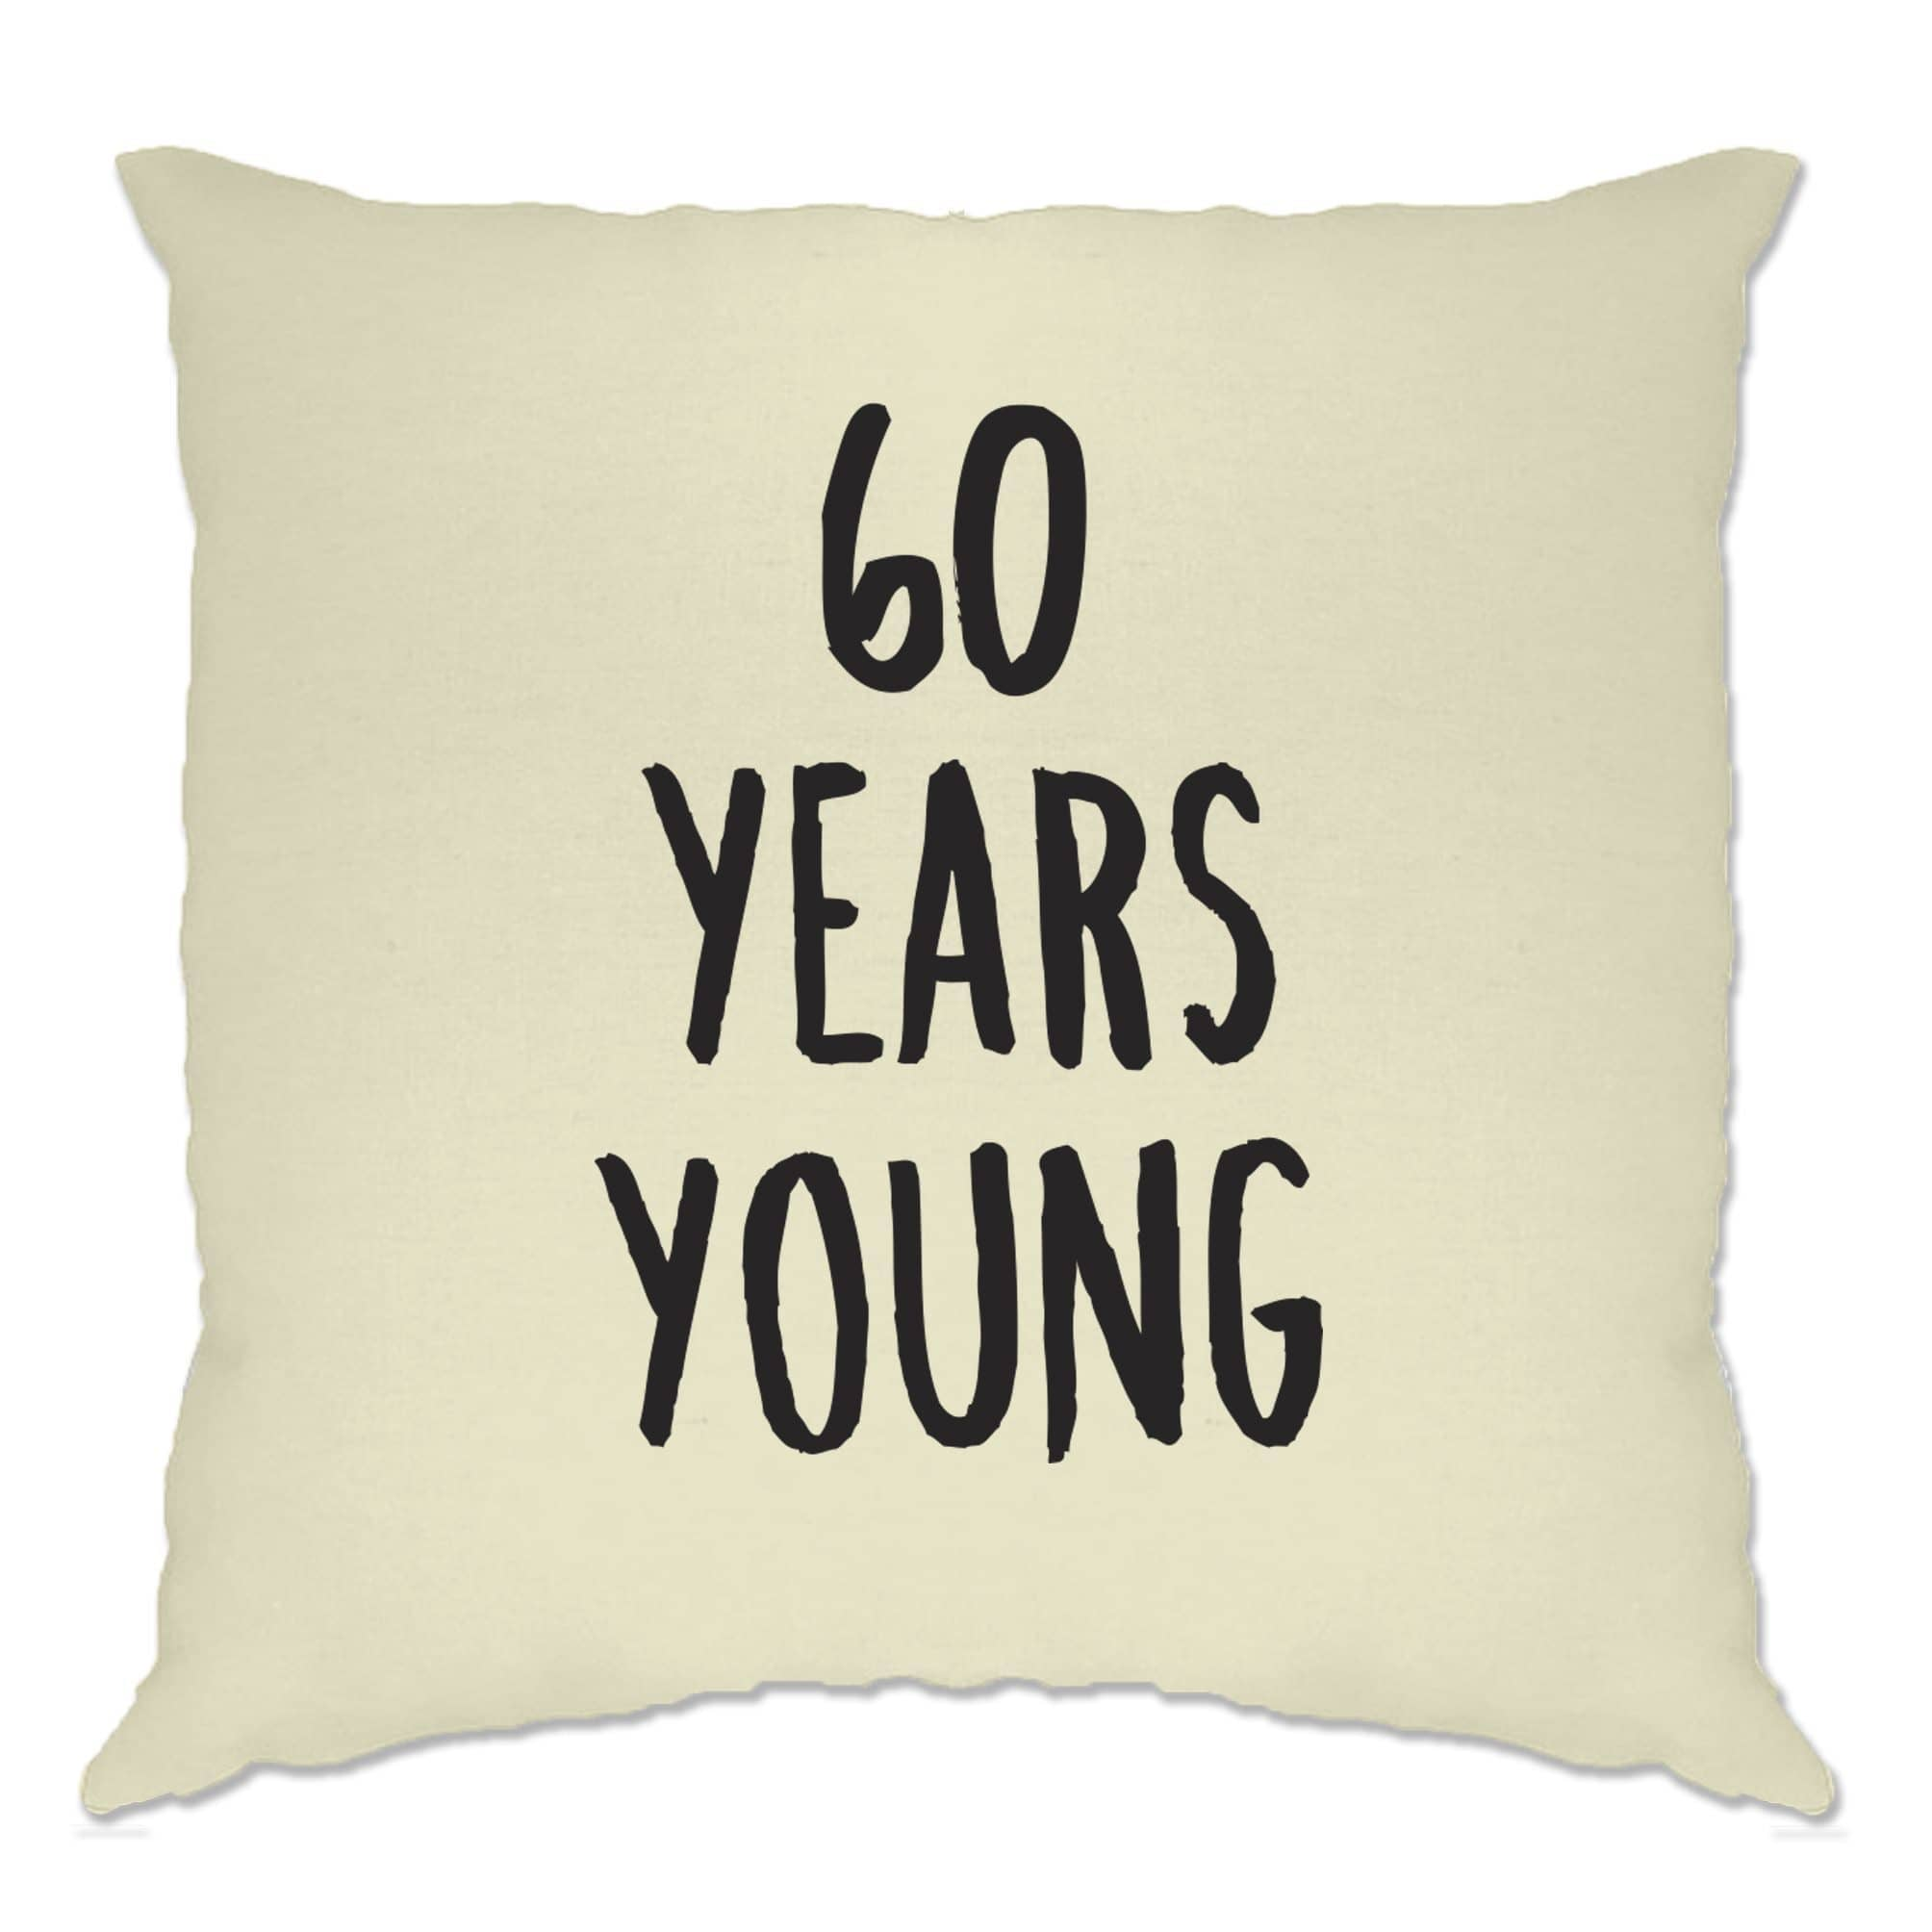 60th Birthday Joke Cushion Cover 60 Years Young Novelty Text